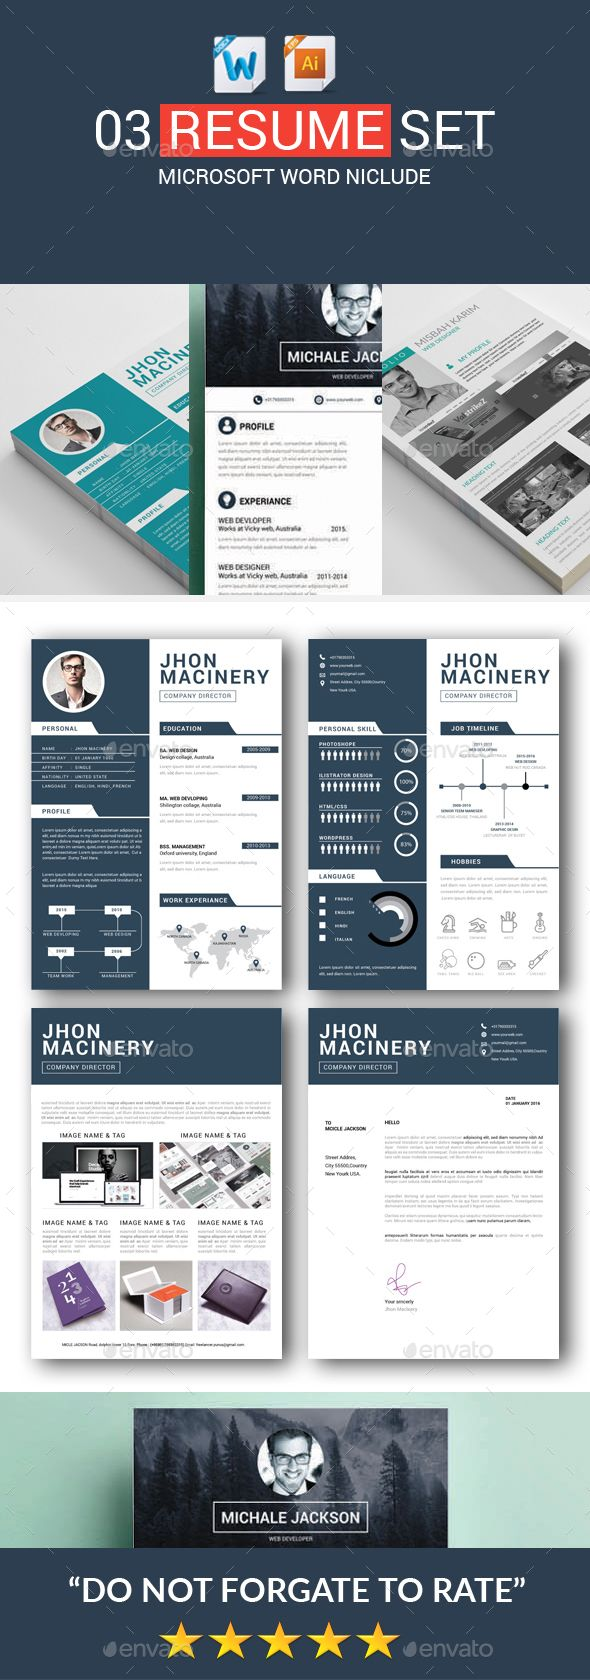 Resume Templates Bundle - PSD, Vector EPS, AI, MS Word